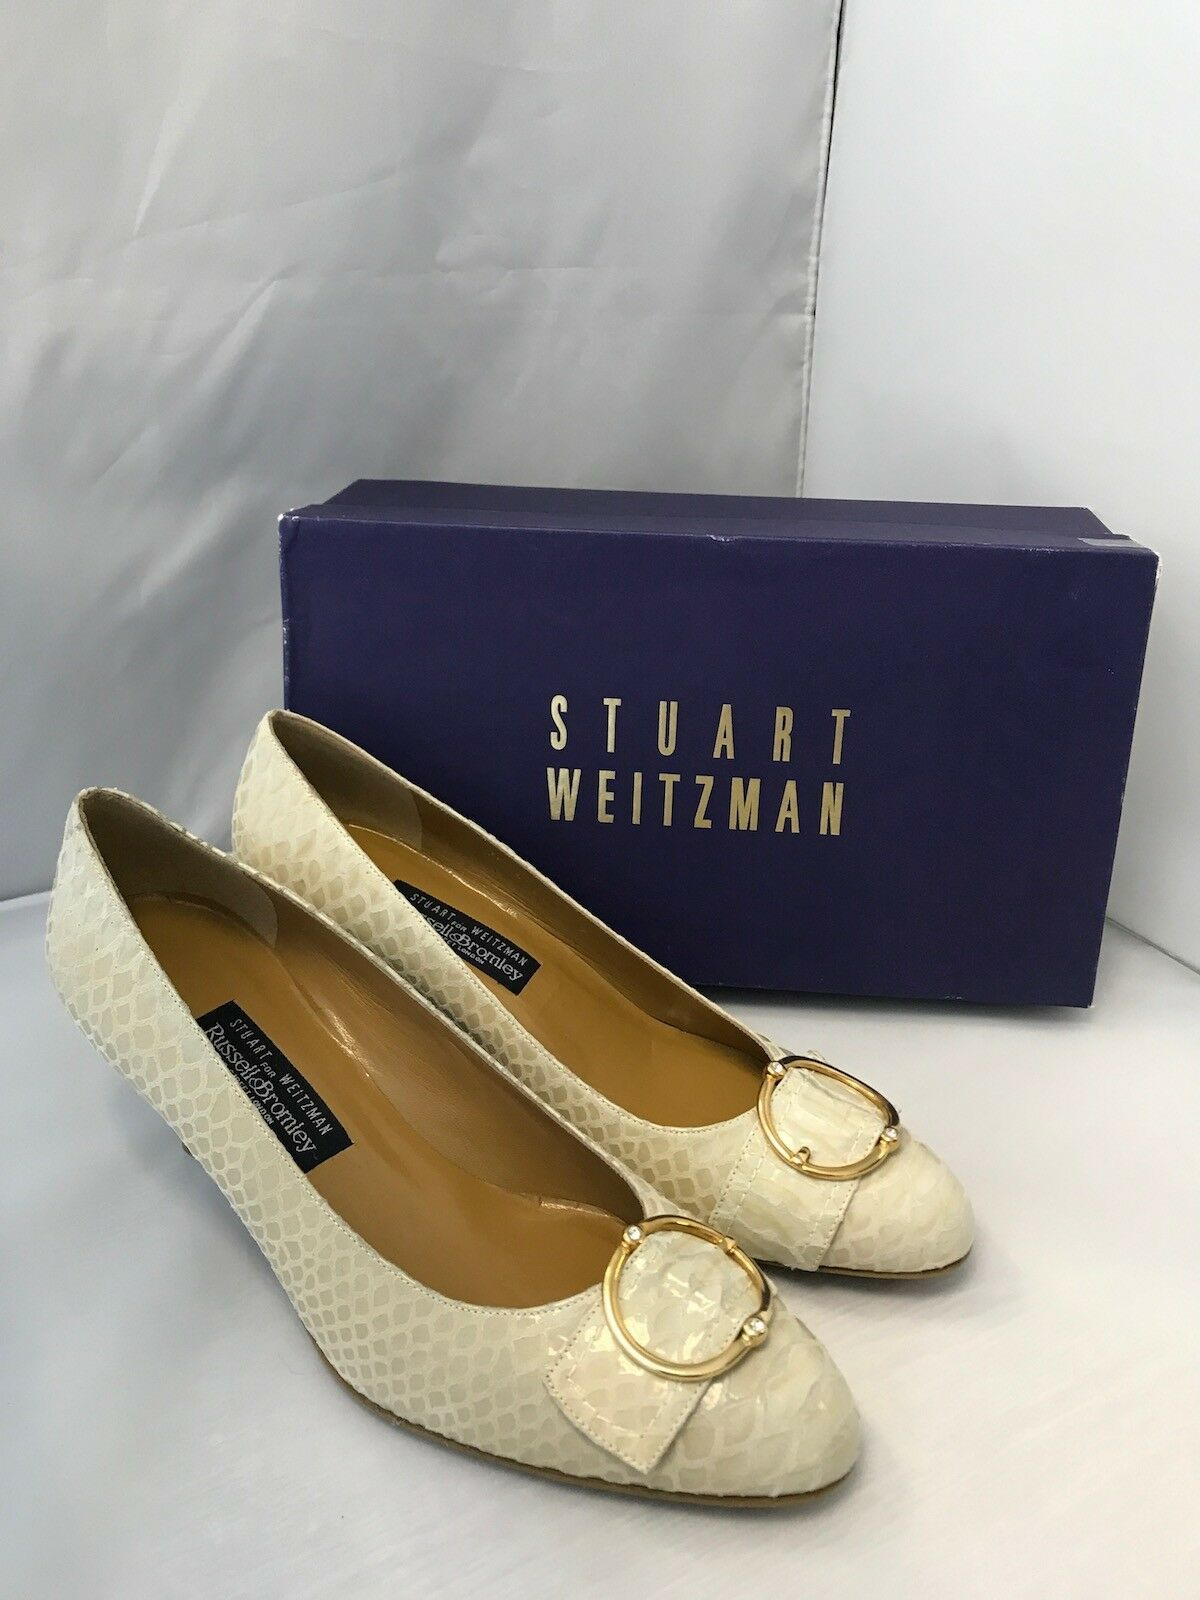 Stuart Weitzman Russell Bromley Ladies Snake Print Buckle Court Shoes UK 7 US 9